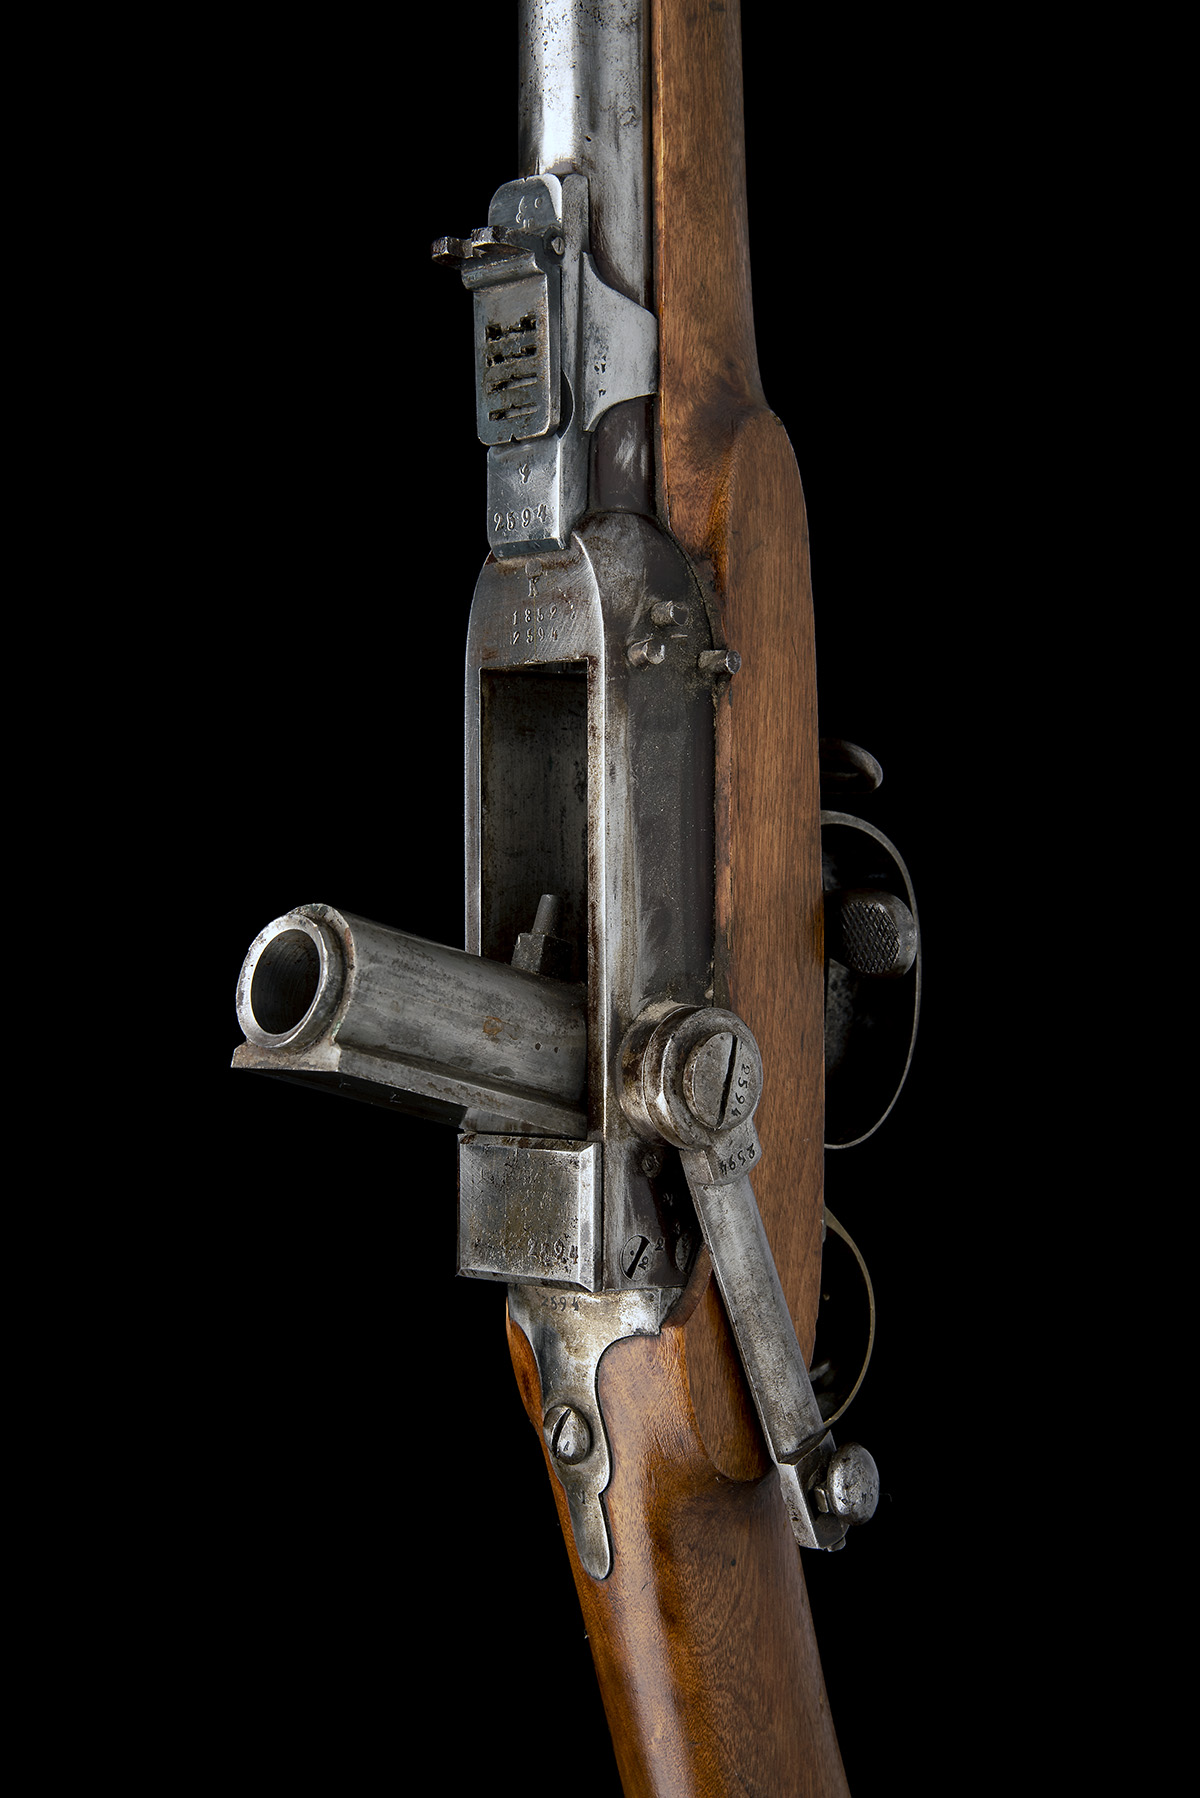 A RARE 17.5mm PERCUSSION BREECH-LOADING SERVICE-RIFLE, MODEL 'NORWEGIAN KAMMERLADER', serial no. - Image 5 of 10